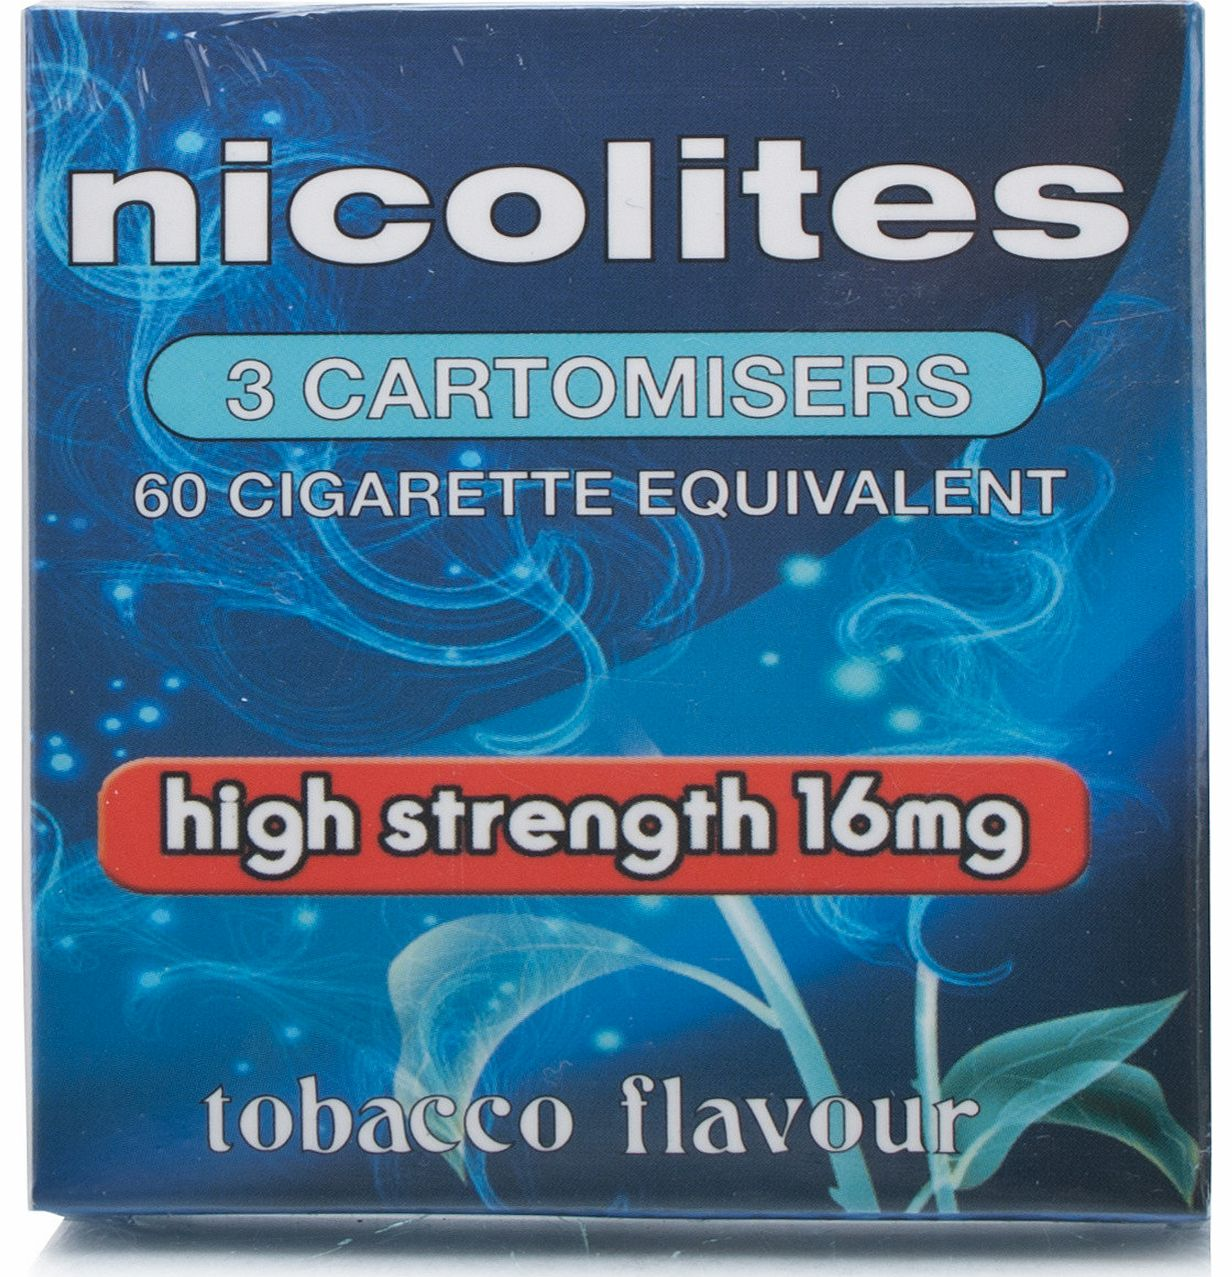 NicoLites Tobacco High Cartomiser (16mg)